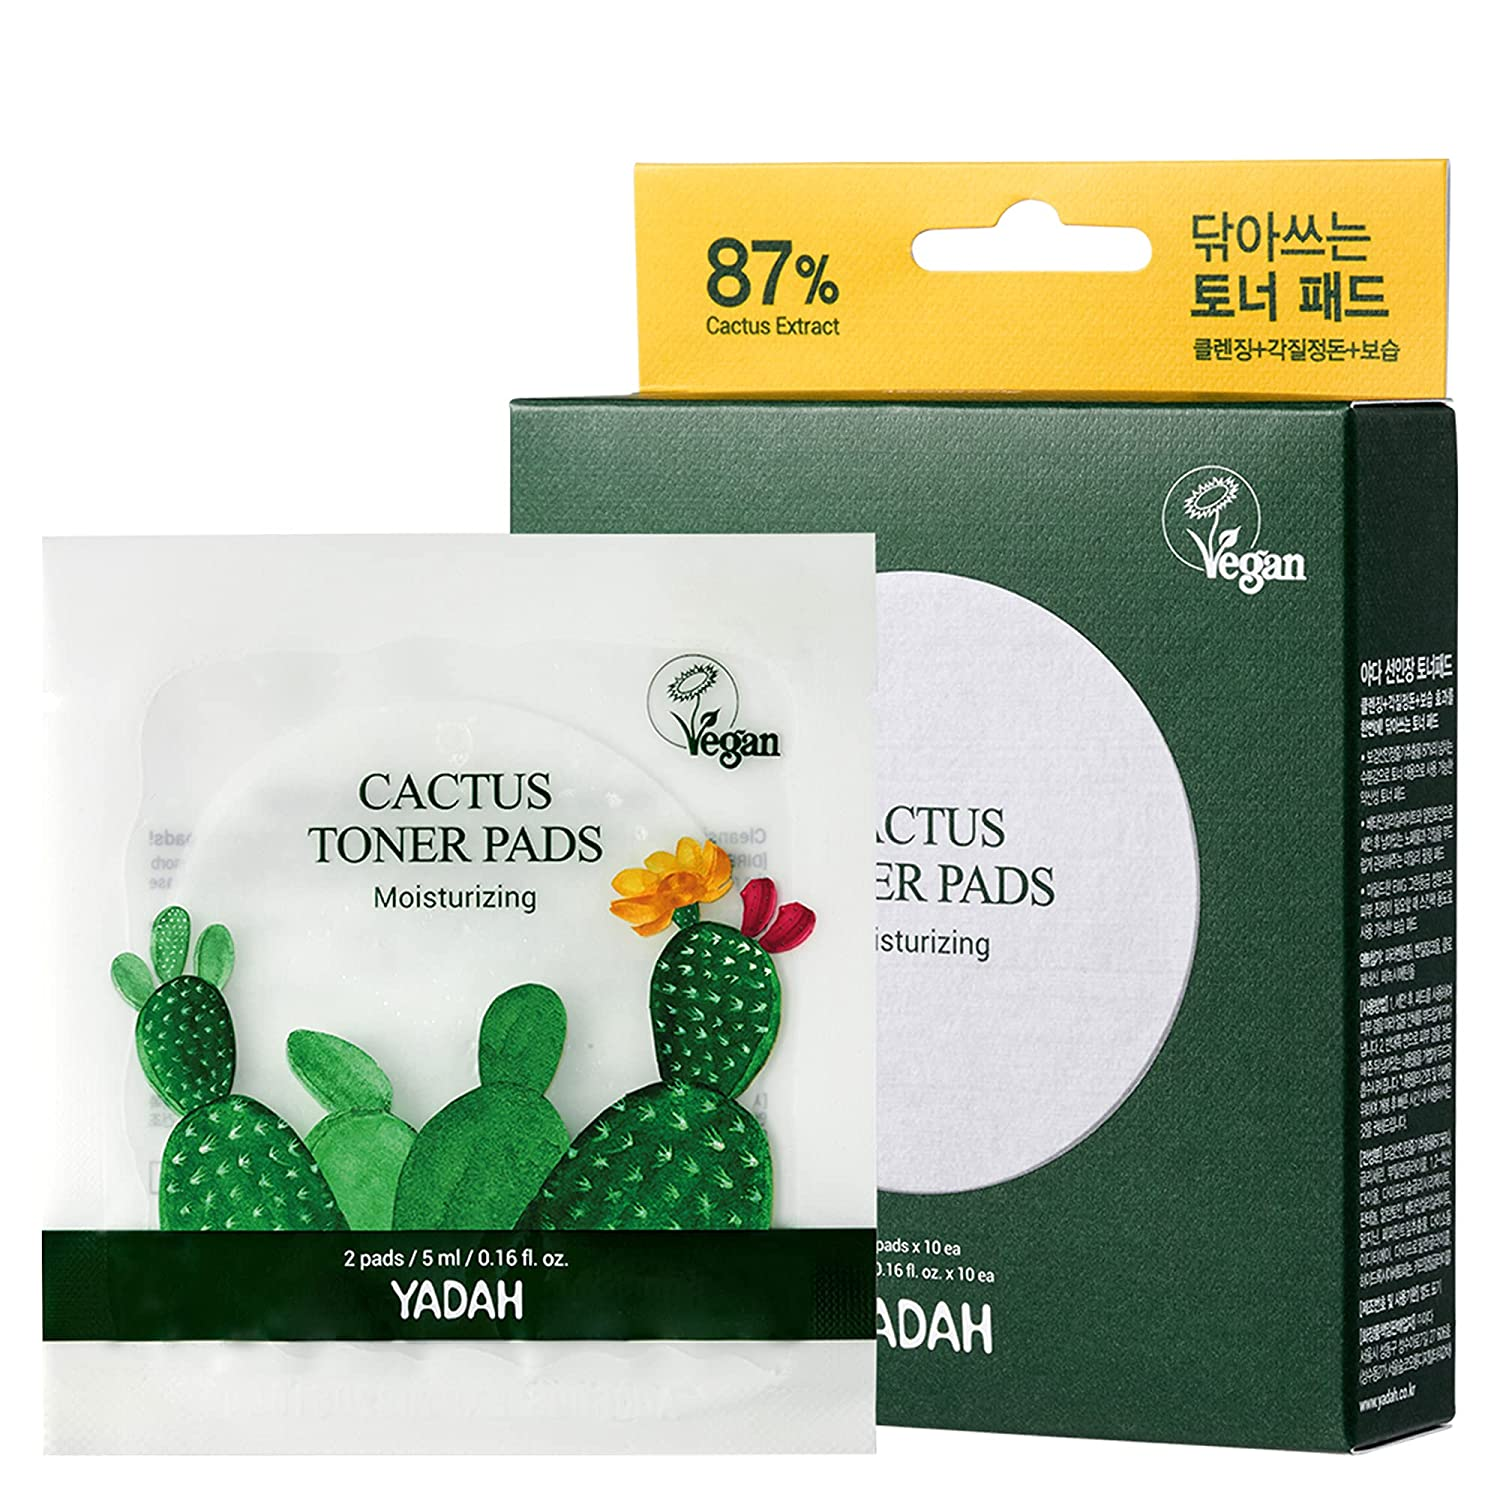 Yadah Cactus Toner Pads 20 Count Wrap 10 Individually 2ea - Selling and selling New color X